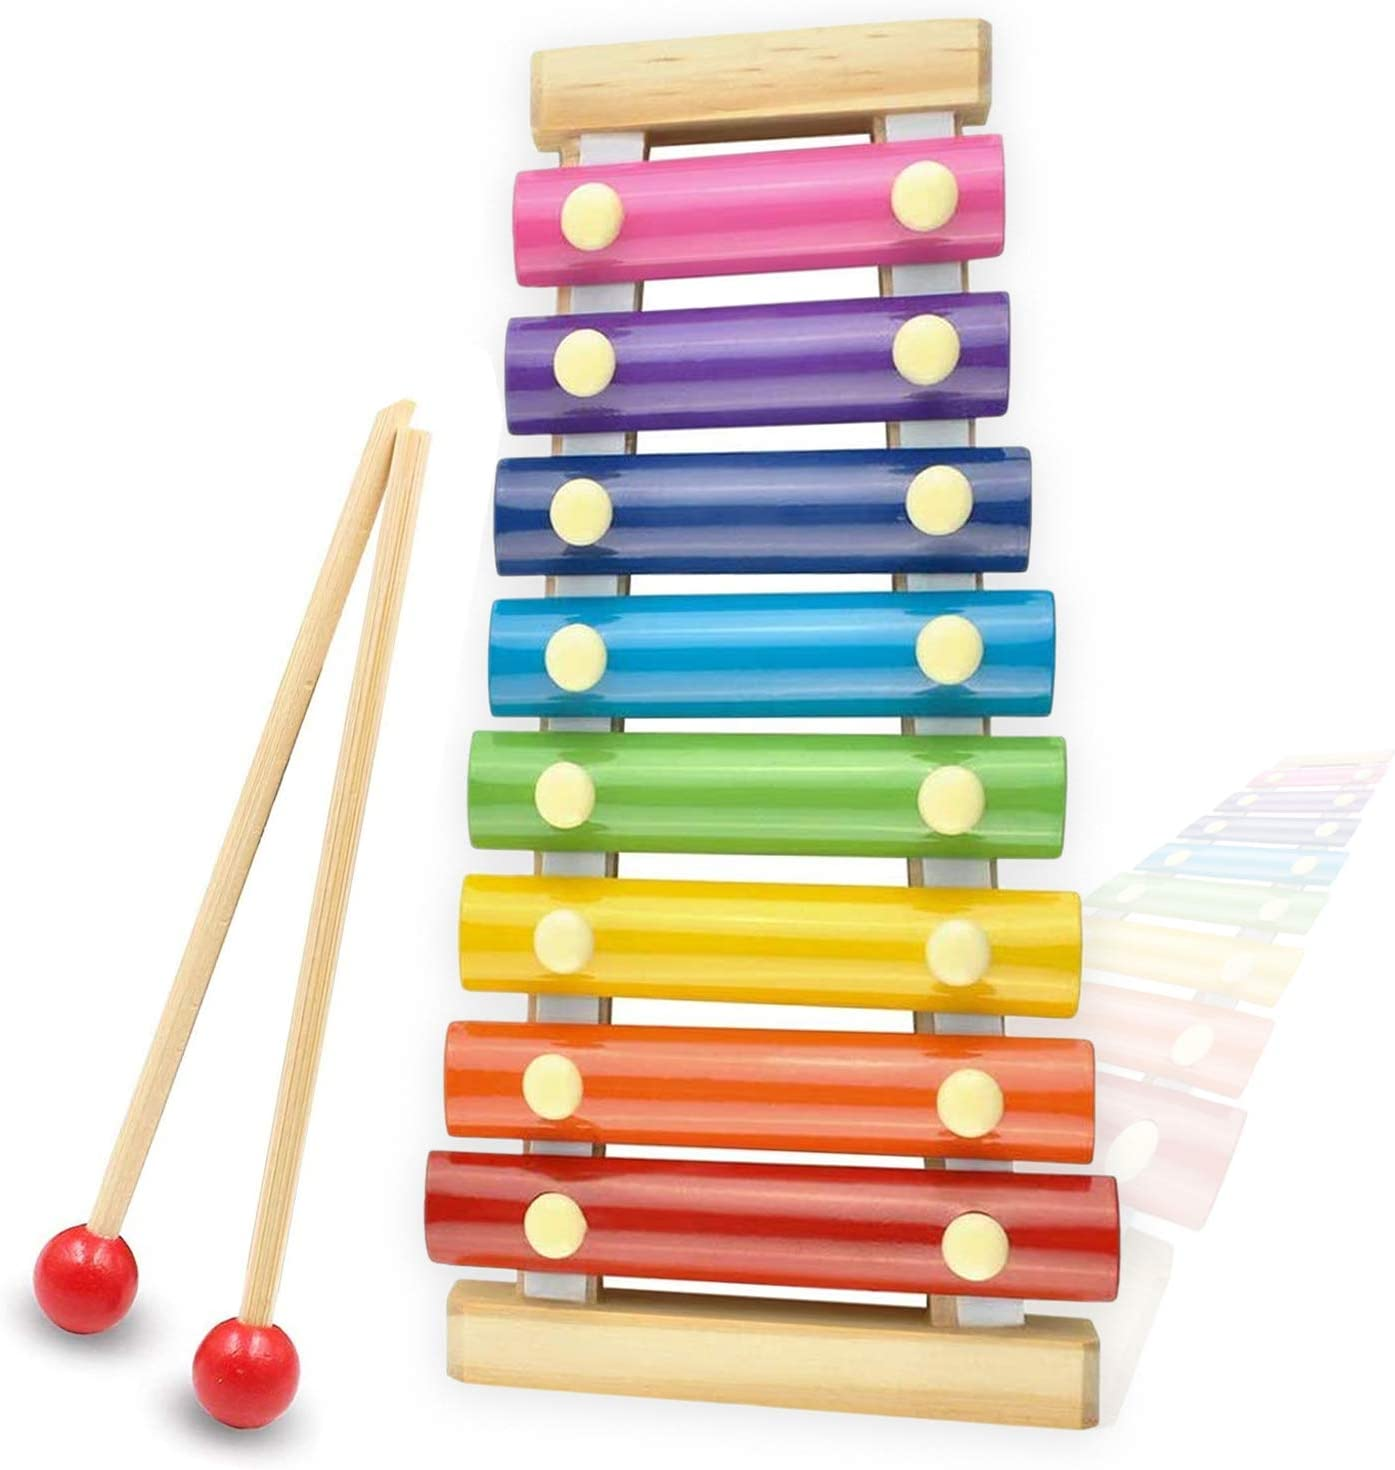 GLOCKENSPIEL /& BEATERS MUSIC CHILDS CHILDREN PERCUSSION KIDS TOY XYLOPHONE